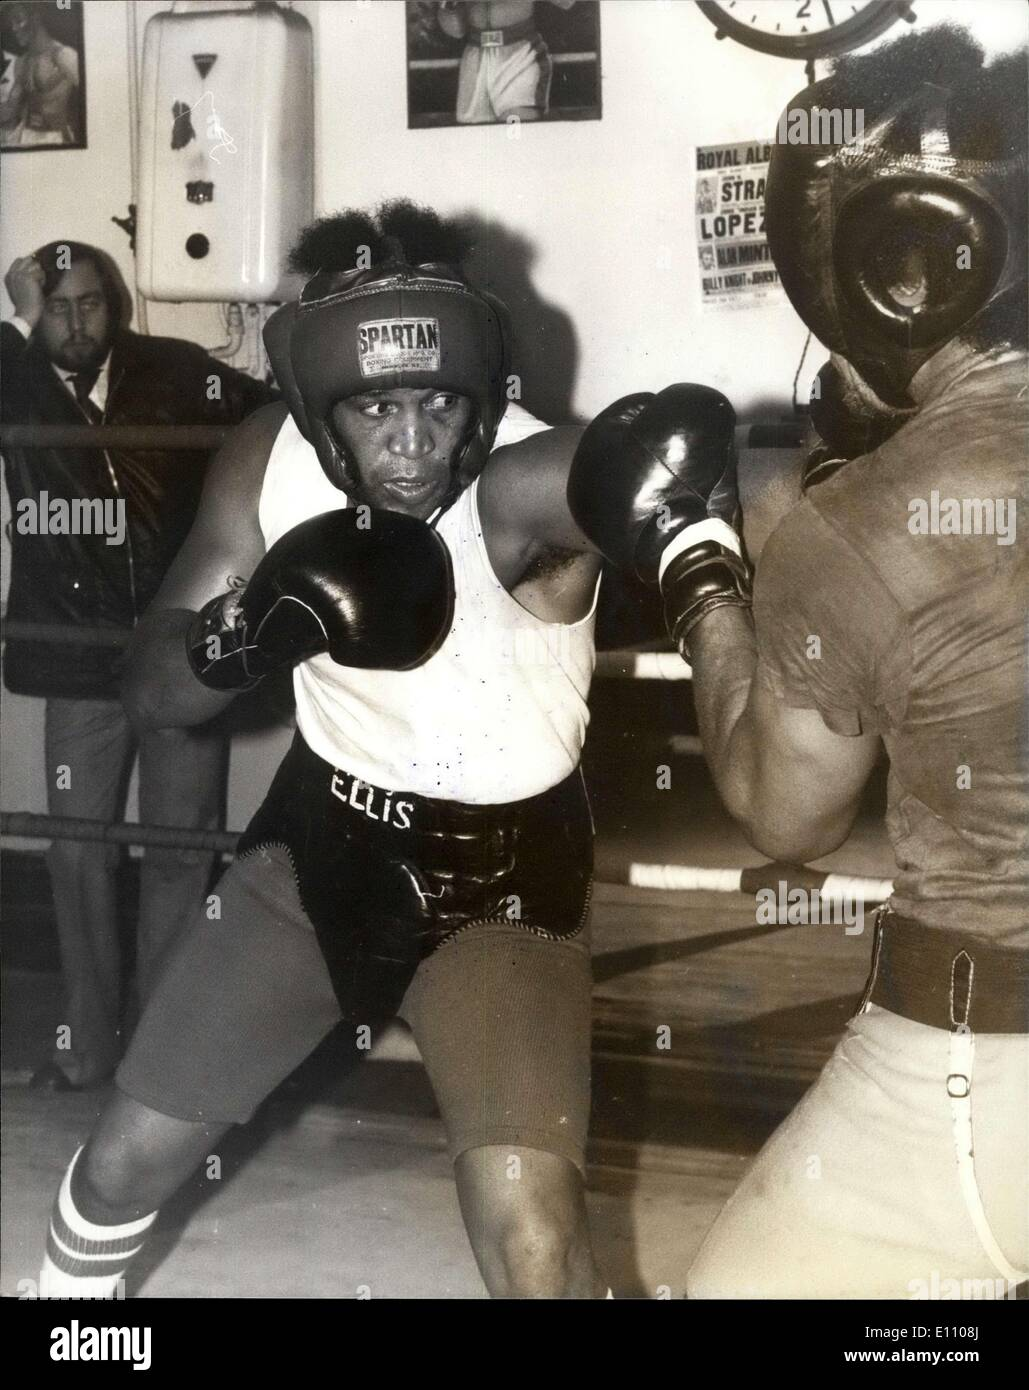 Nov. 05, 1974 - JIMMY ELLIS IN TRAINING AT THOMAS'A BECKETT. PHOTO SHOWS: JIMMY ELLIS seen during a work - out with British Light - heavyweight BILLY KNIGHT. He fights JOE BUGNER the British European and Commonwealth Heavy - weight Champion next Tuesday at Wembley. - Stock Image